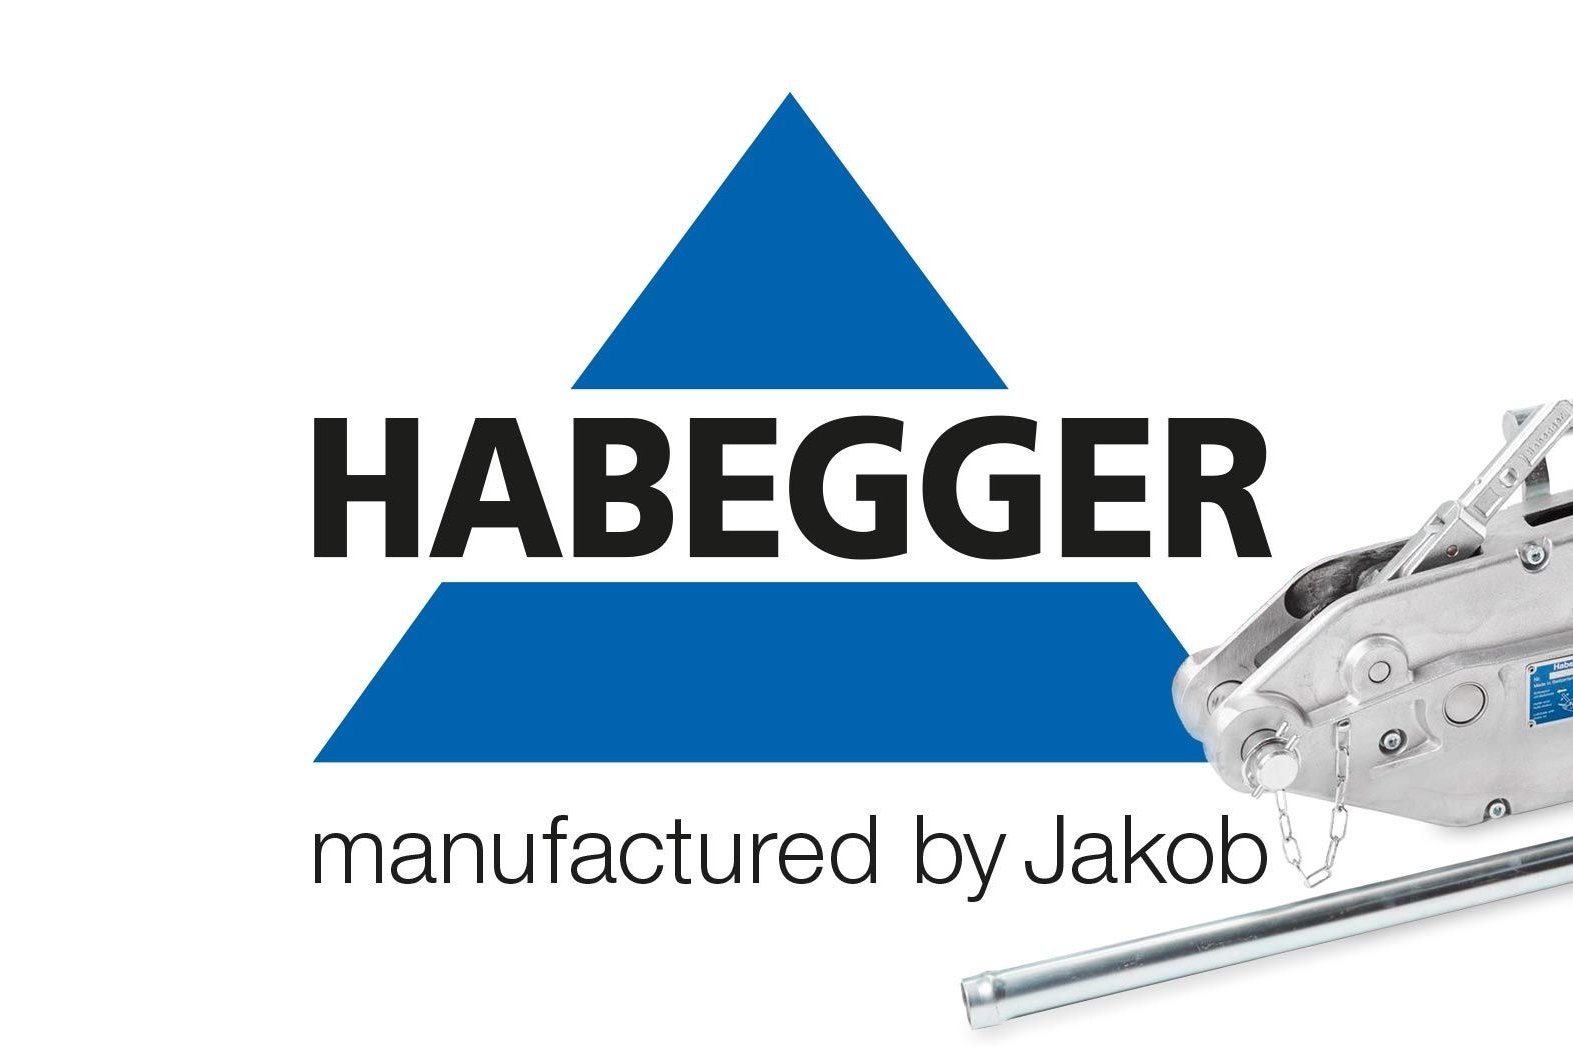 The new Habegger logo with the claim 'manufactured by Jakob' and a Habegger multi-purpose hoist